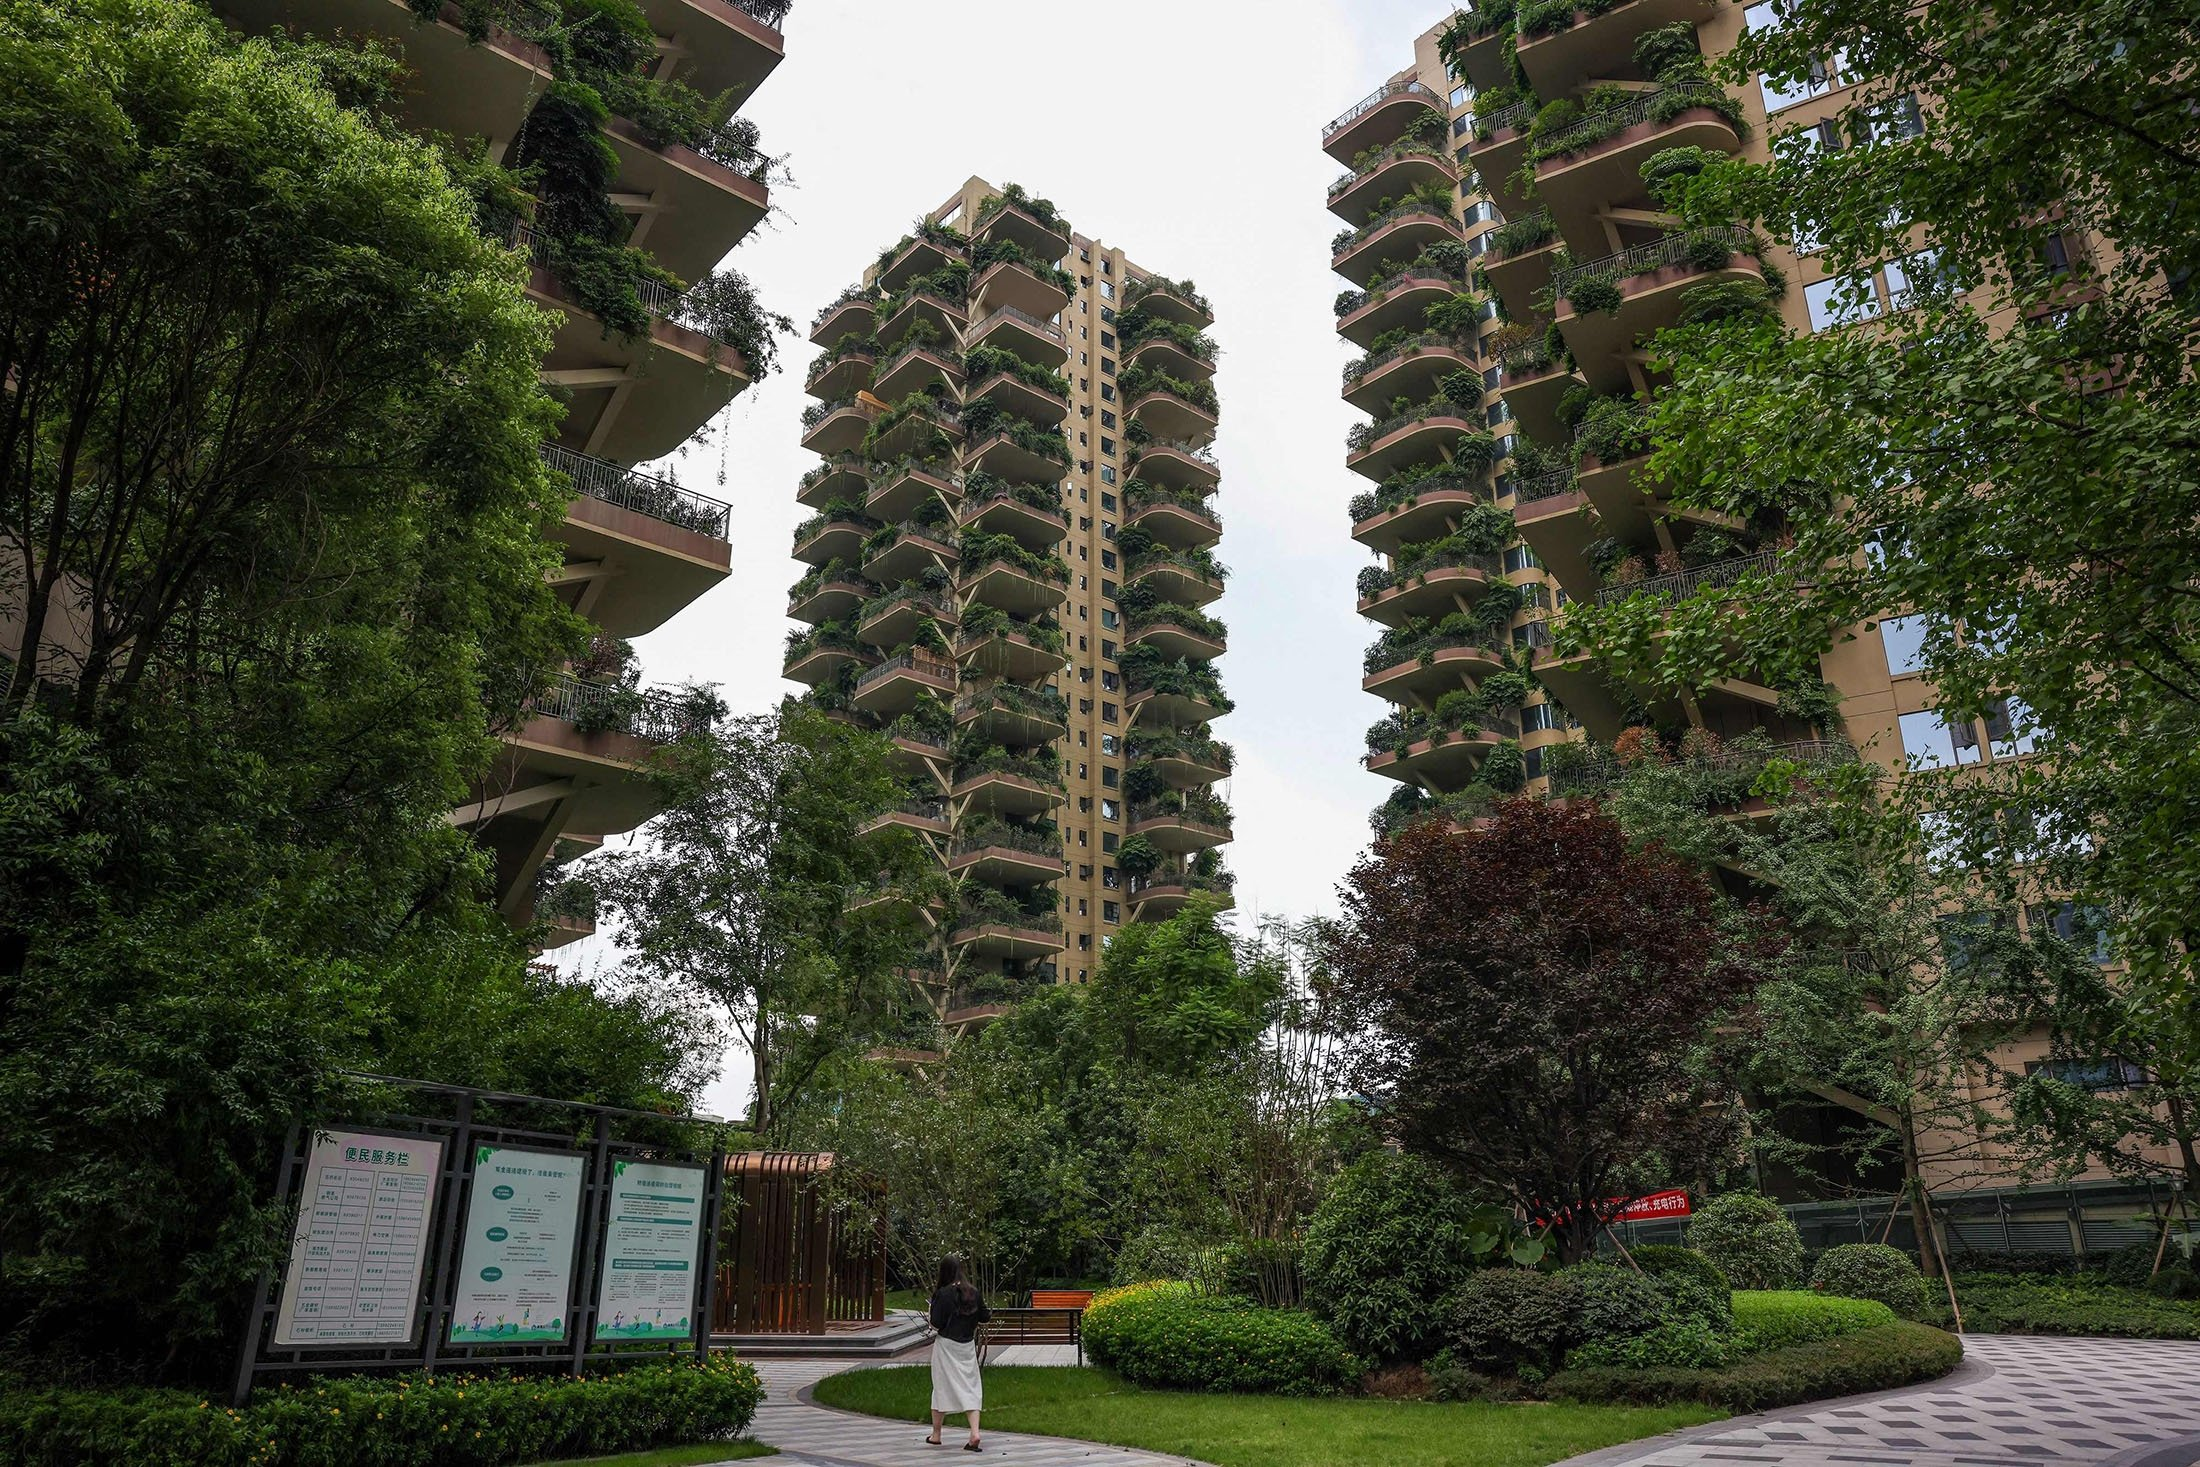 Apartment blocks with balconies can be seen covered with plants at a residential community in Chengdu in China's southwestern Sichuan province, China, July 12, 2021.  (AFP Photo)